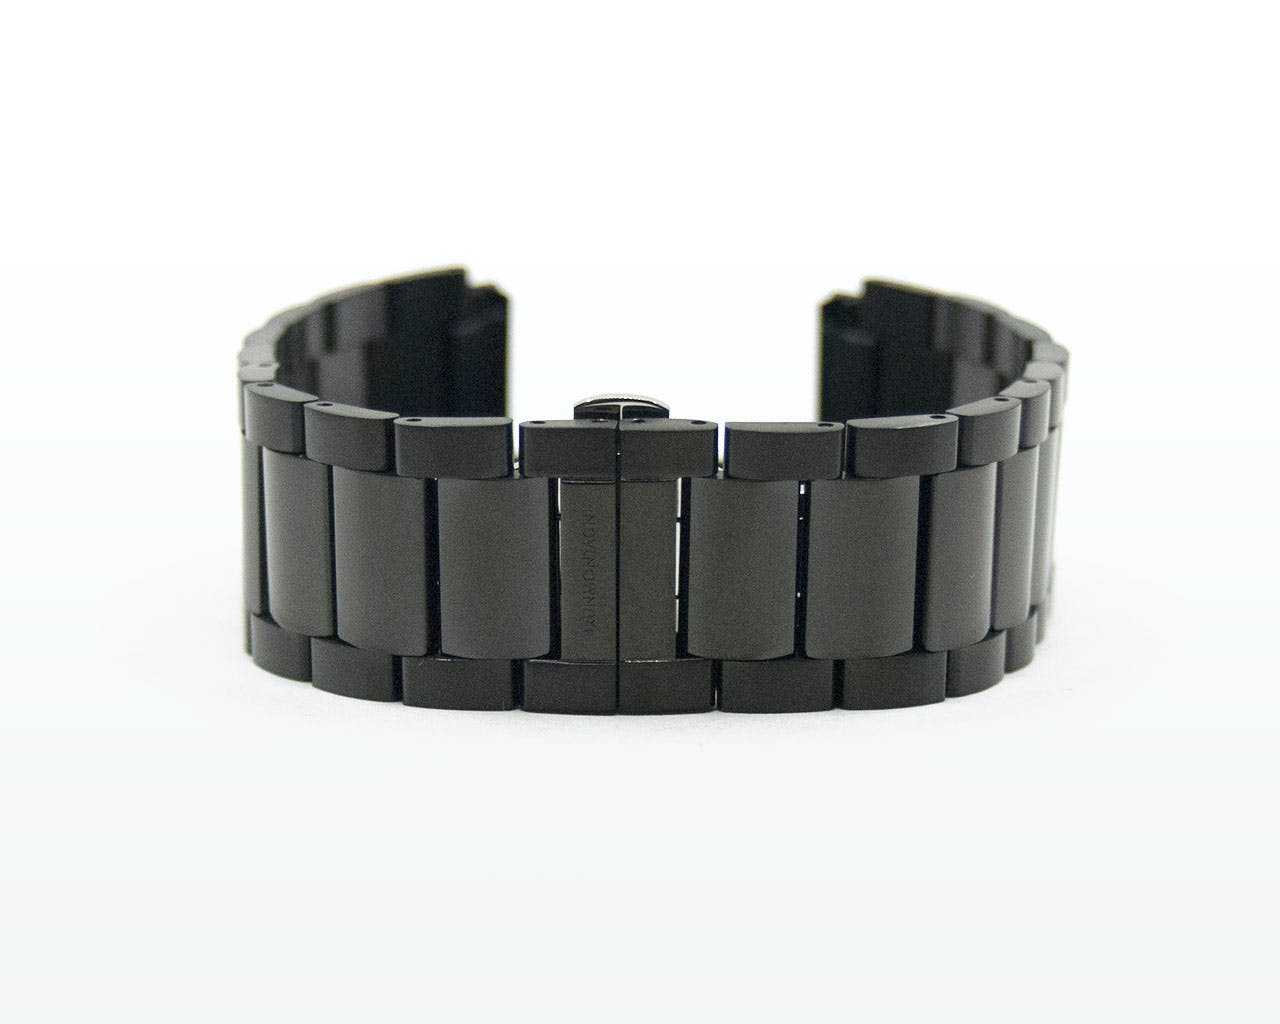 Black strap for Representor - closed